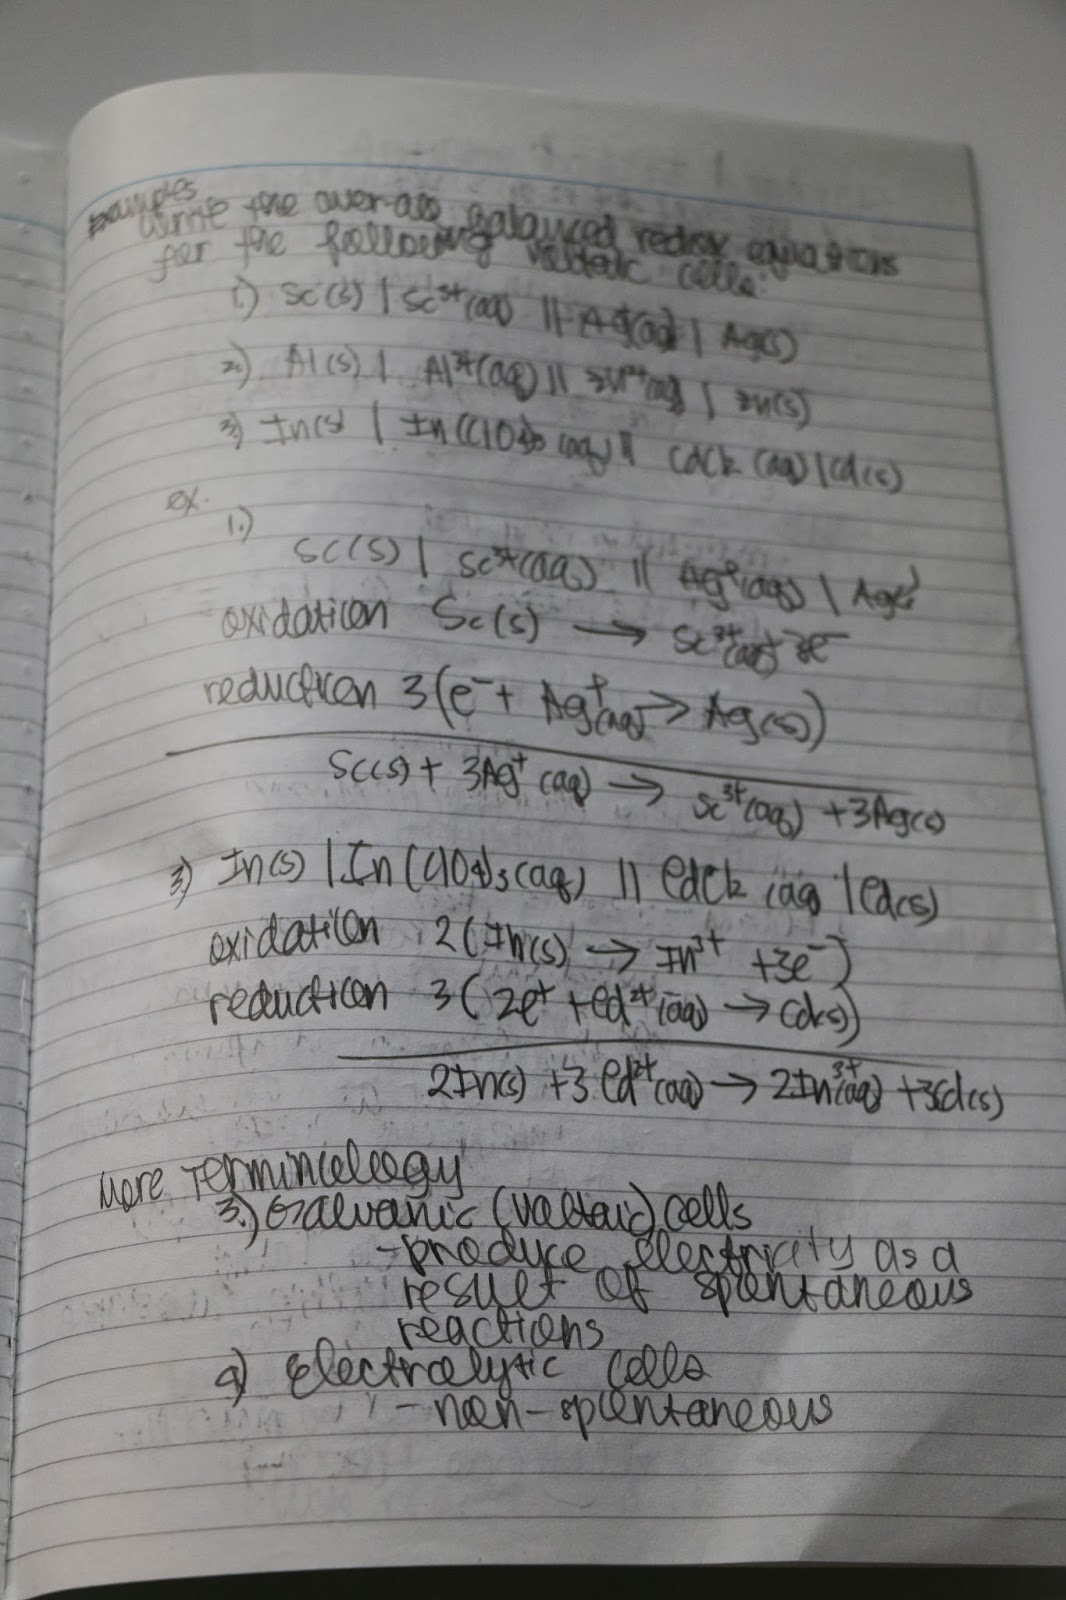 UPD Samplexes, Readings, and Materials: UPD Chem 17 ...